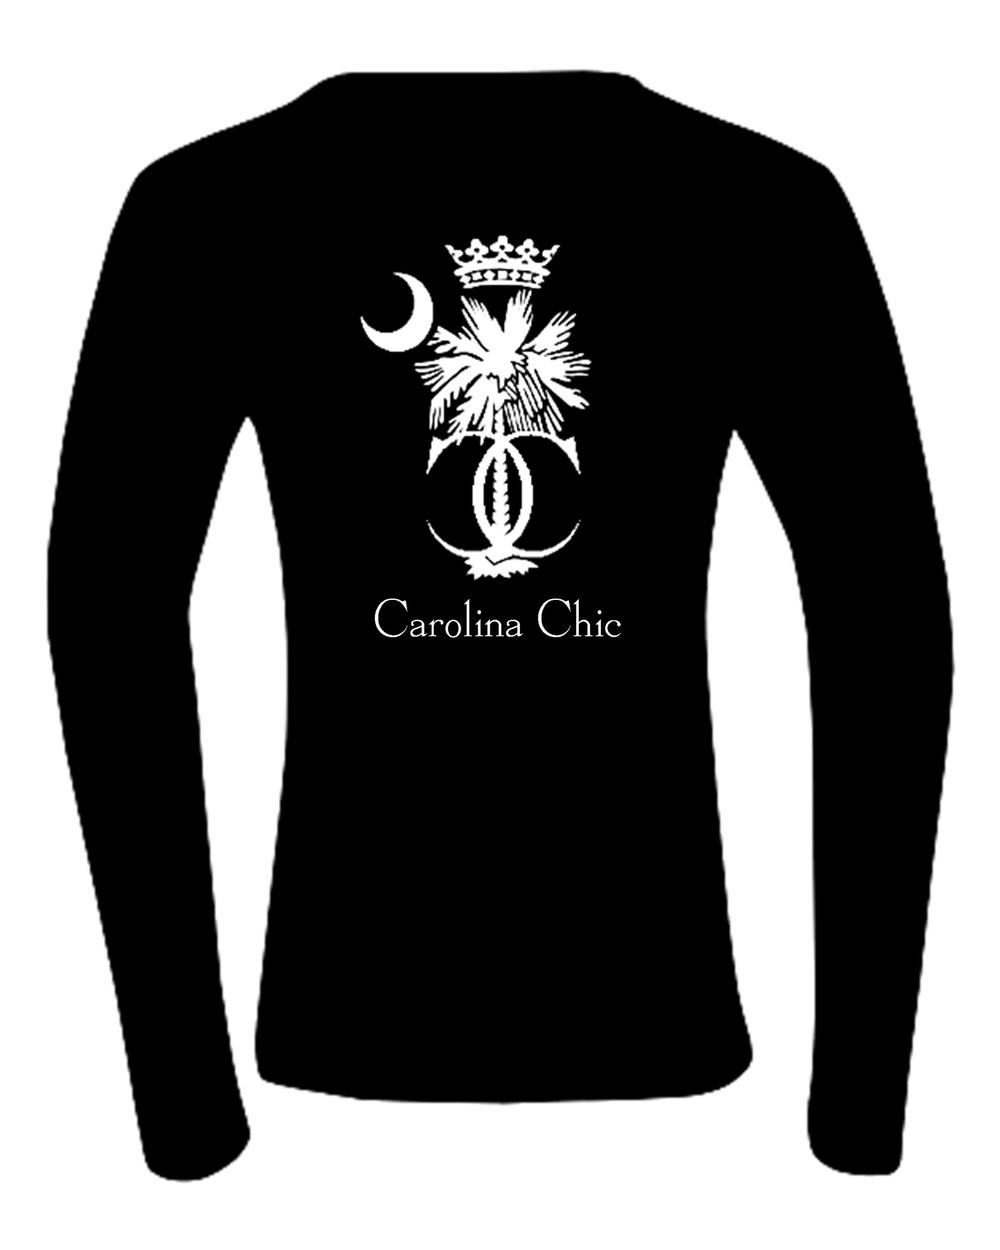 T-Shirt Design / Carolina Chic